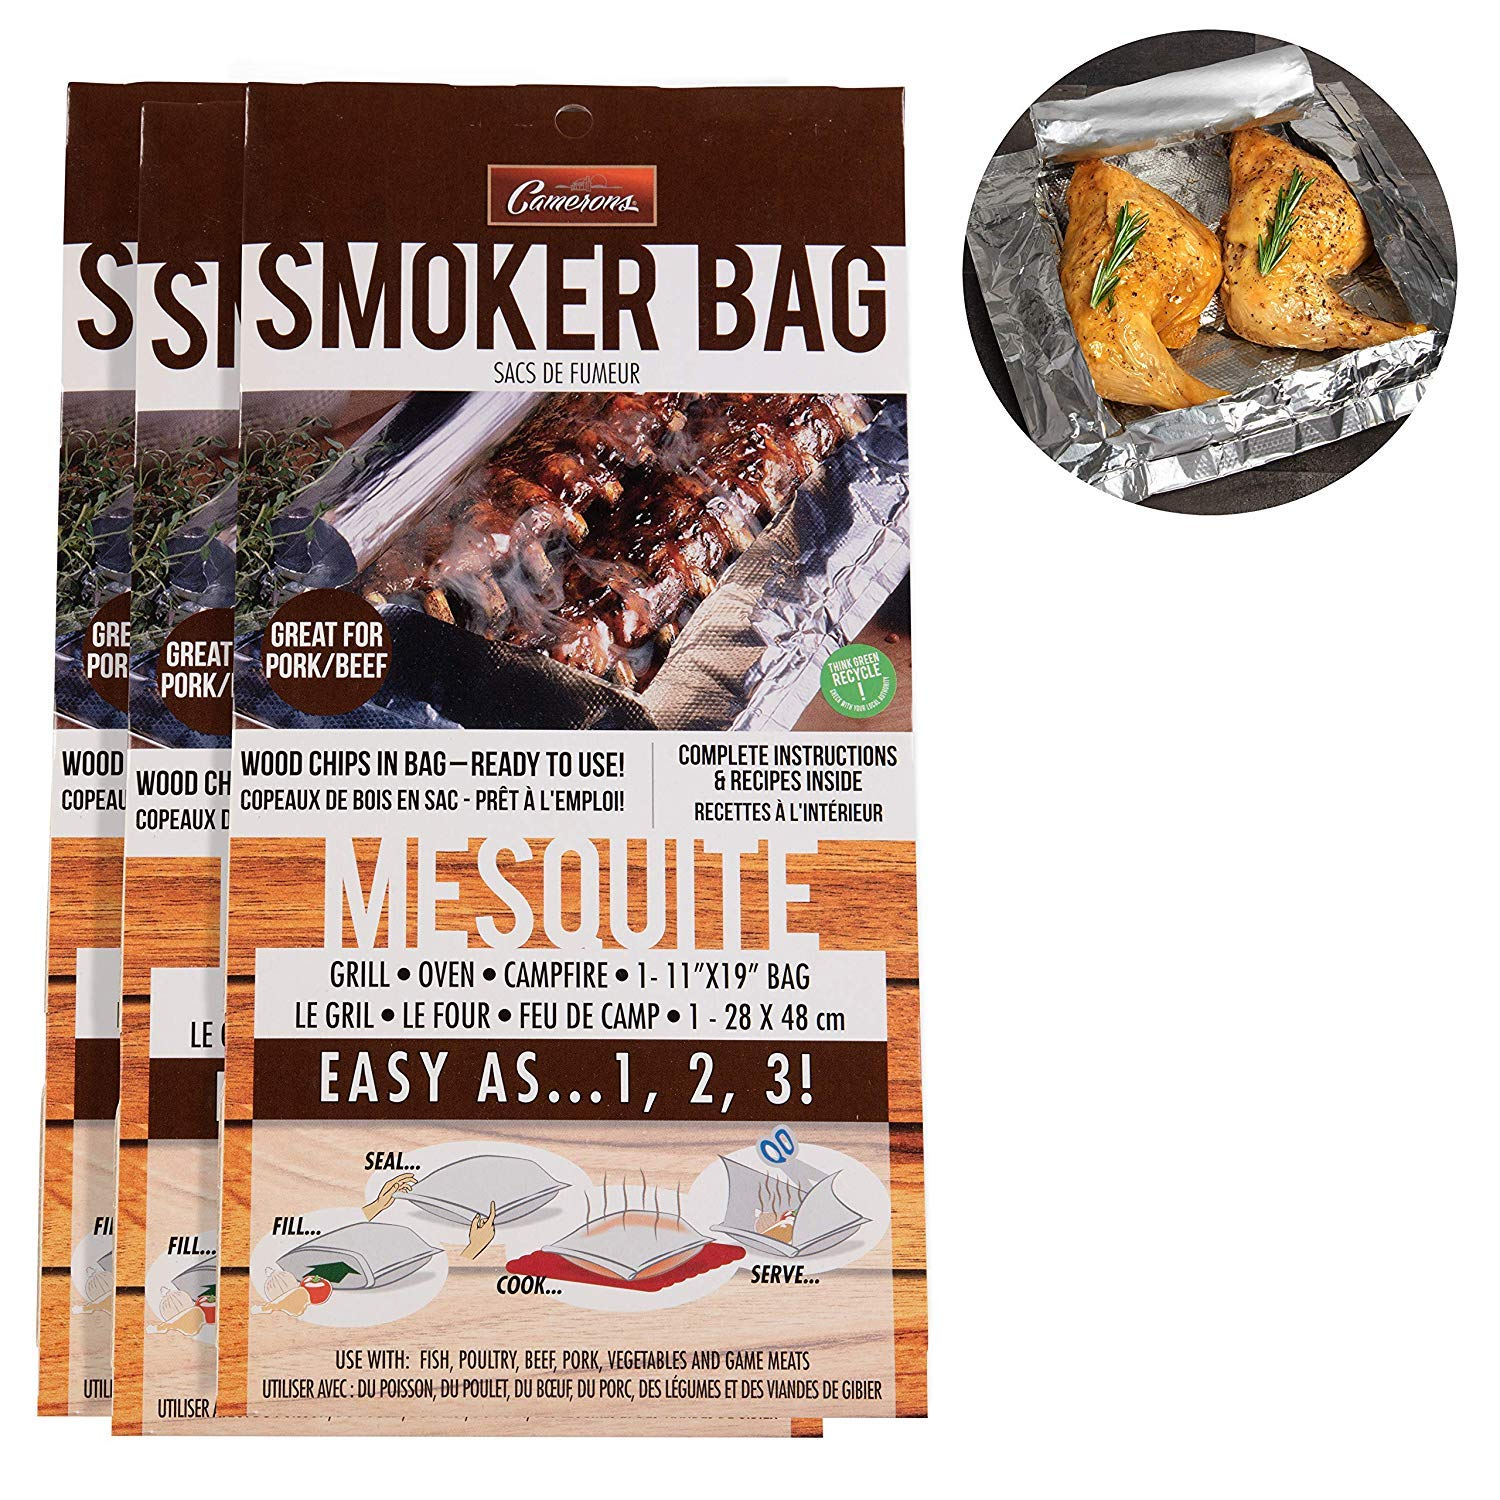 Yard, Garden & Outdoor Living Outdoor Camping Smoker Cooker Fish Meat & Cooking Bbq Inc Bag Of Wood Chips New High Quality Goods